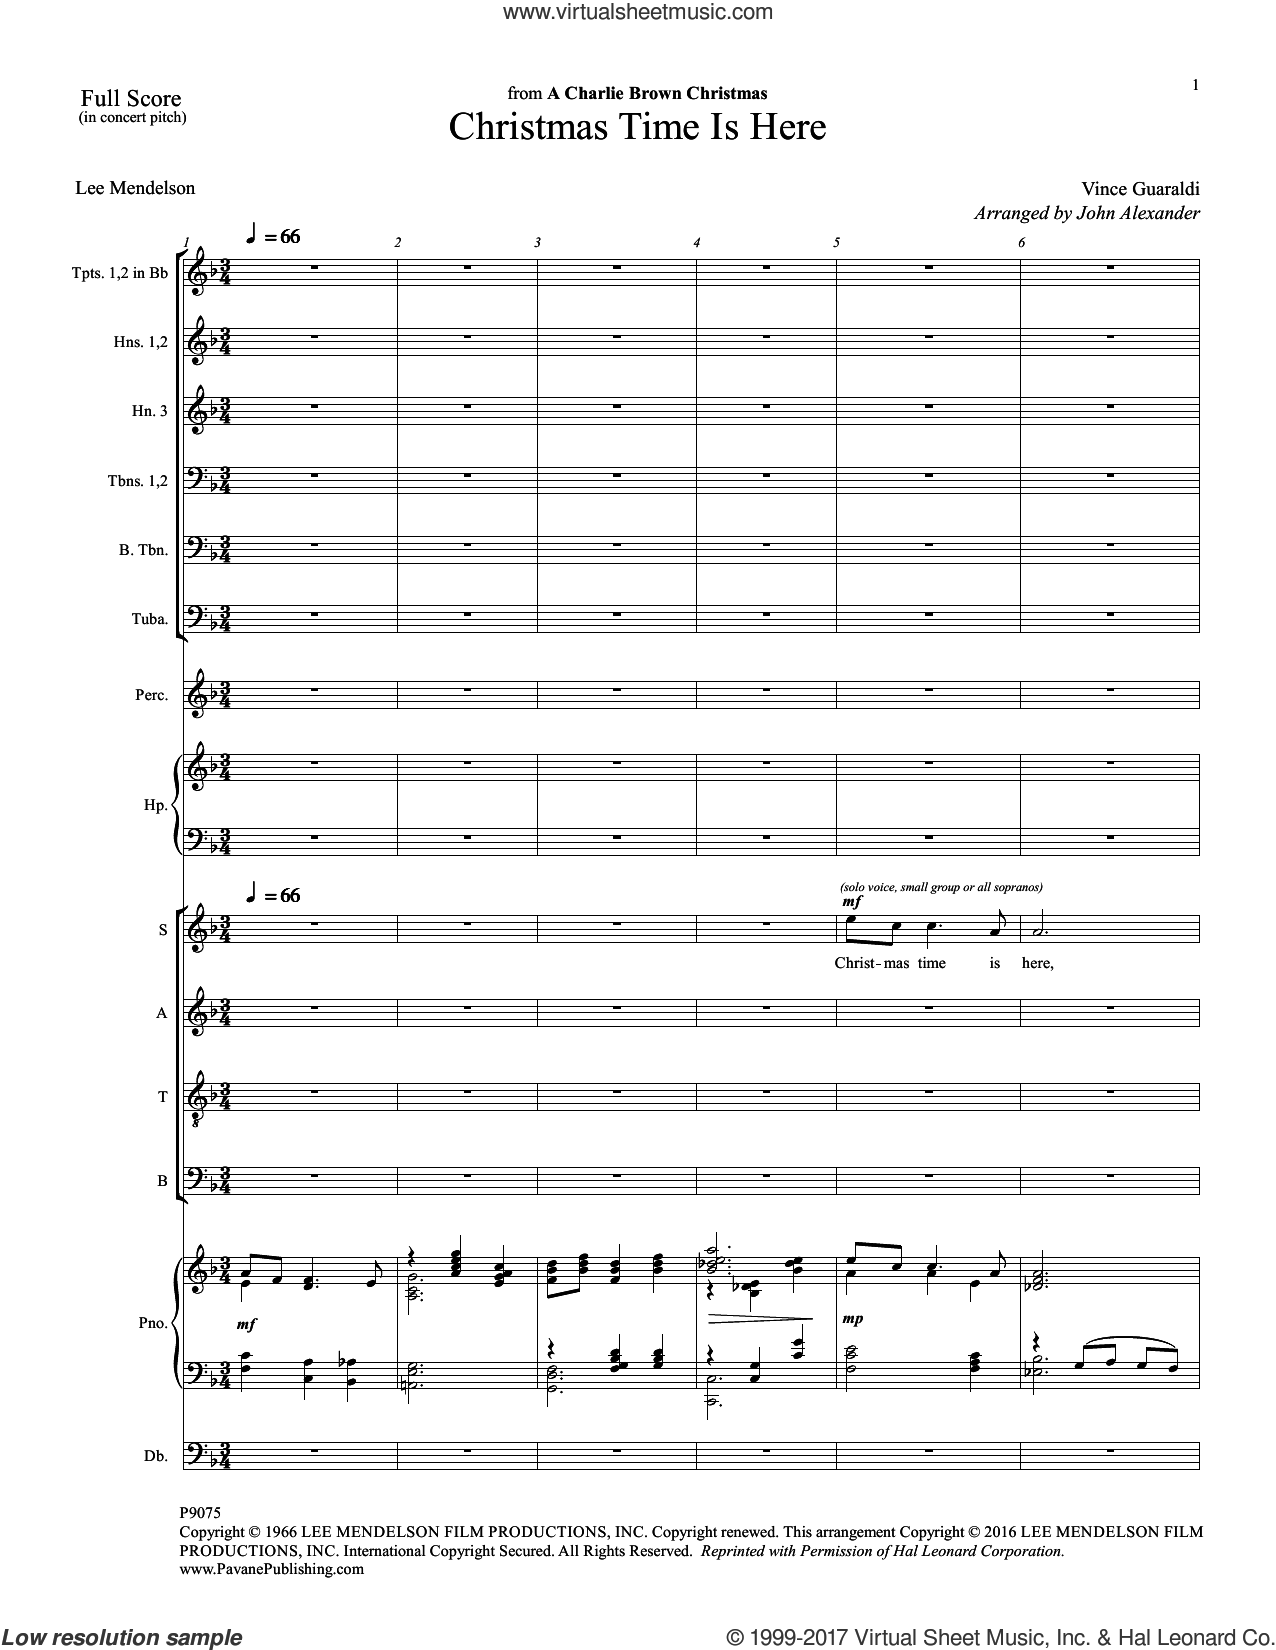 Christmas Time Is Here (COMPLETE) sheet music for orchestra/band by Vince Guaraldi, John Alexander and Lee Mendelson, intermediate. Score Image Preview.